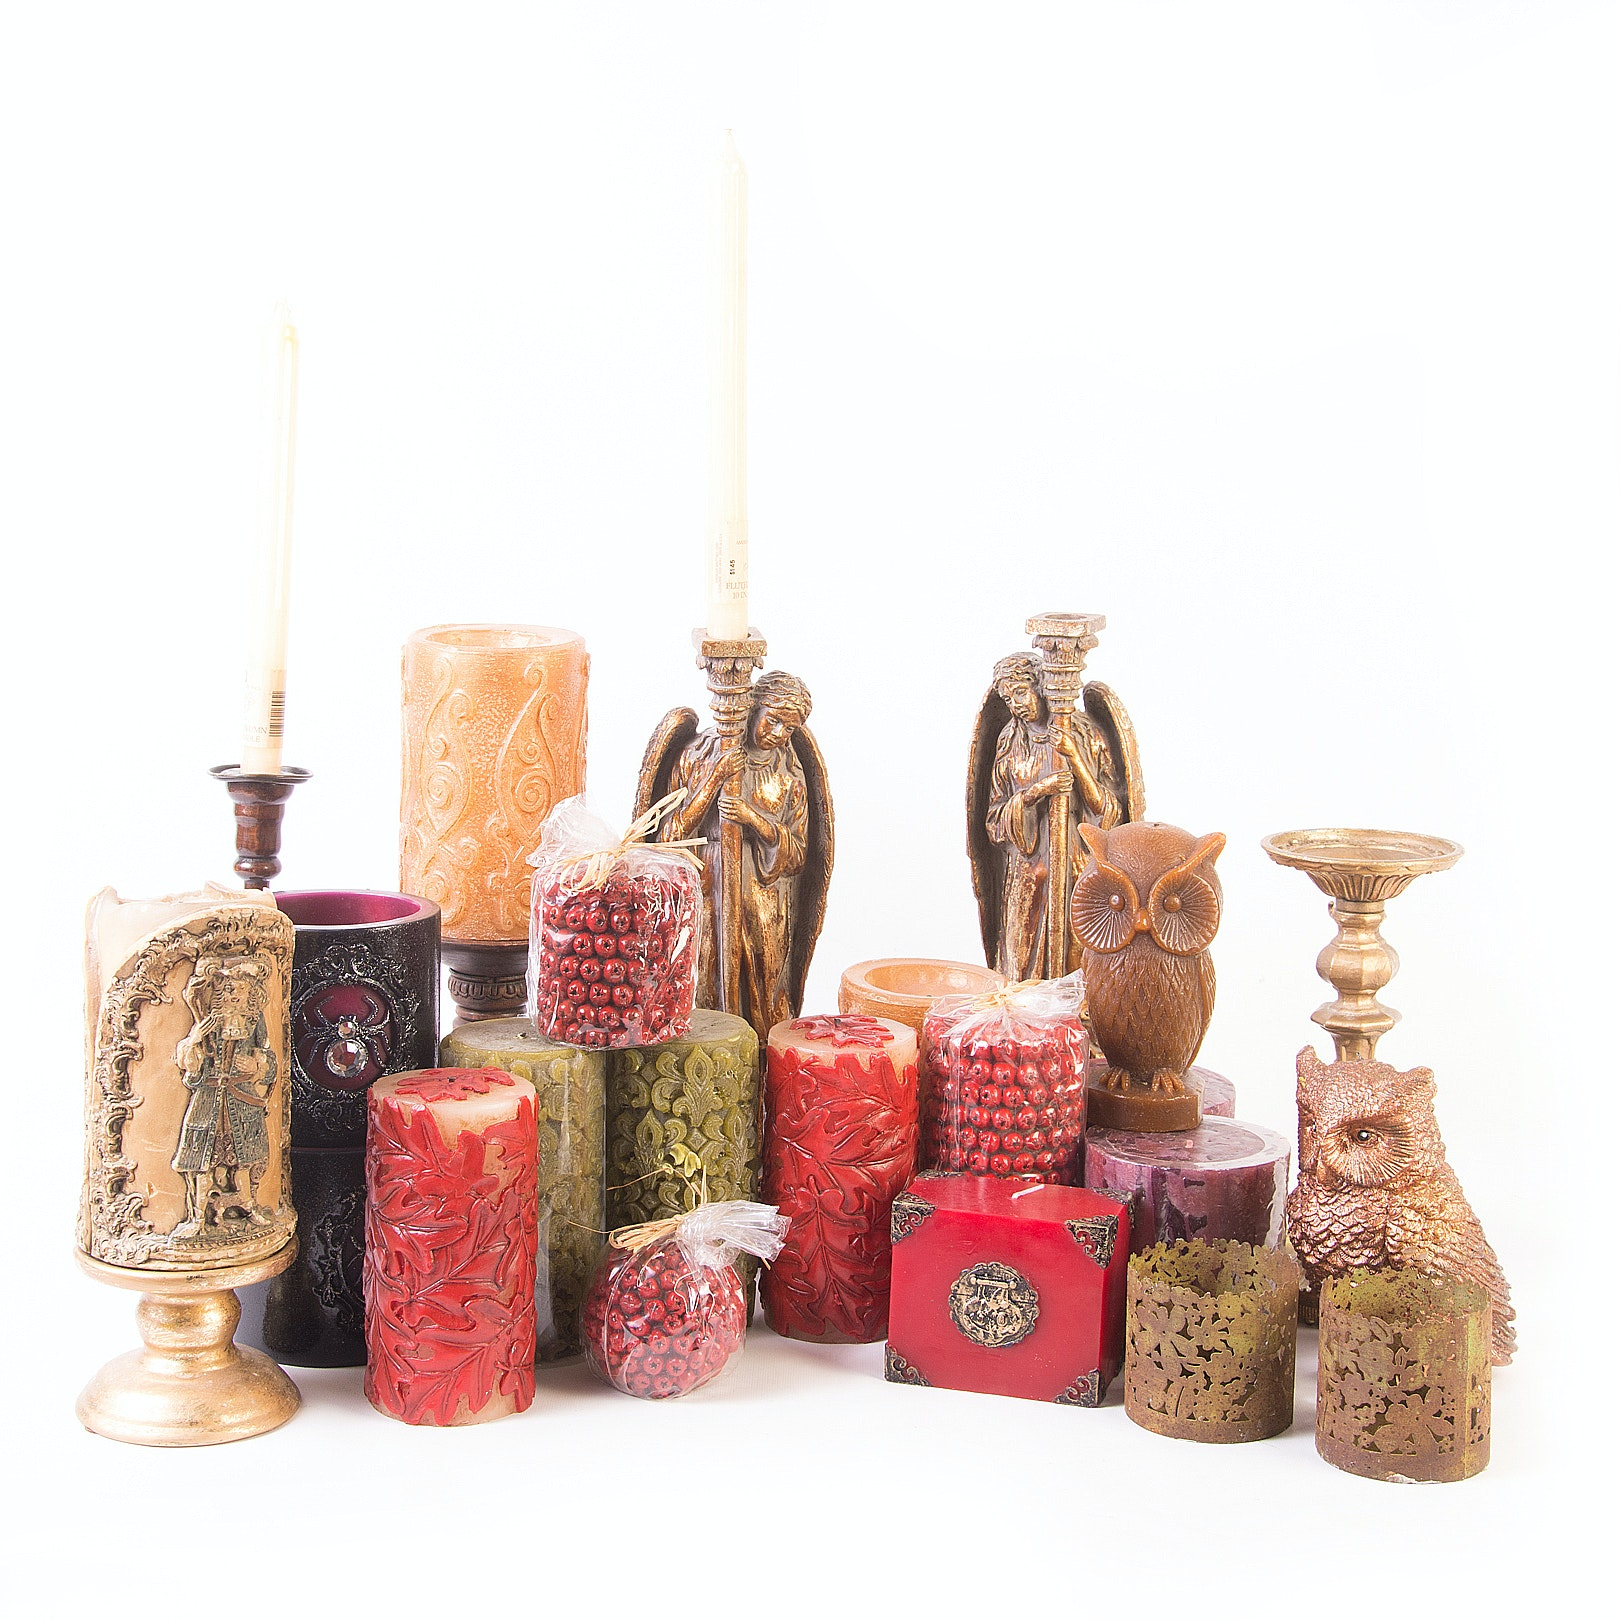 Candlestick and Candle Grouping